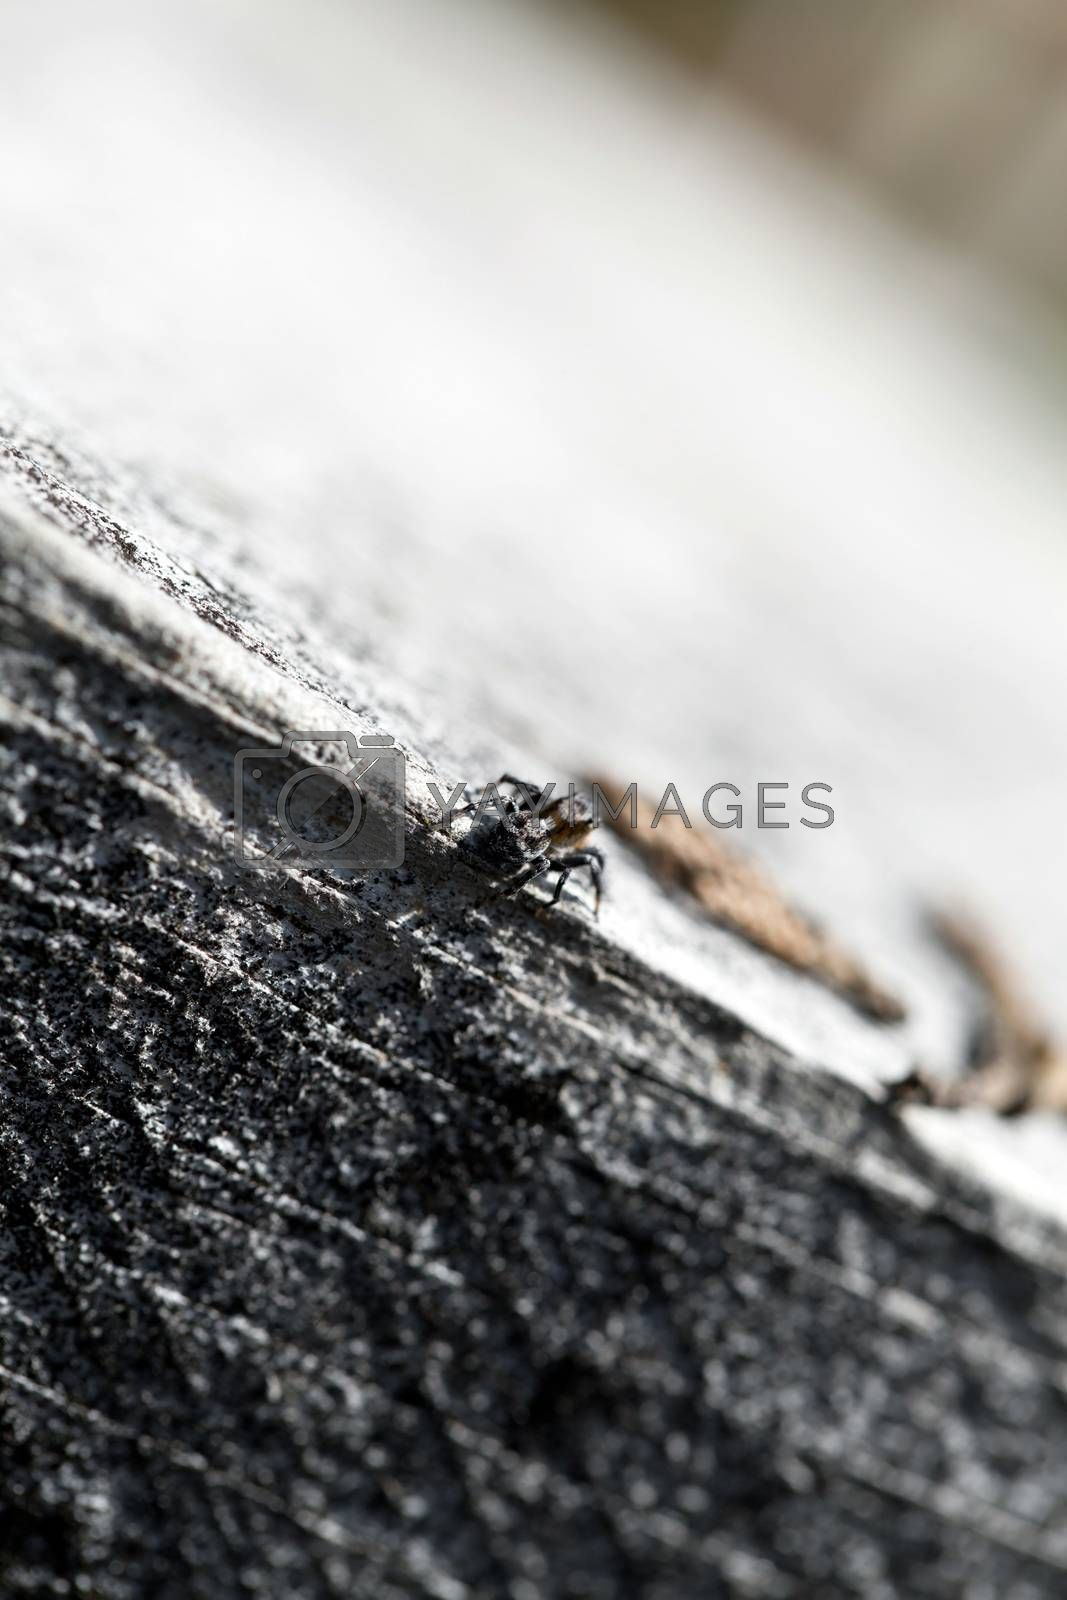 Zebra Jumper Spider by graficallyminded